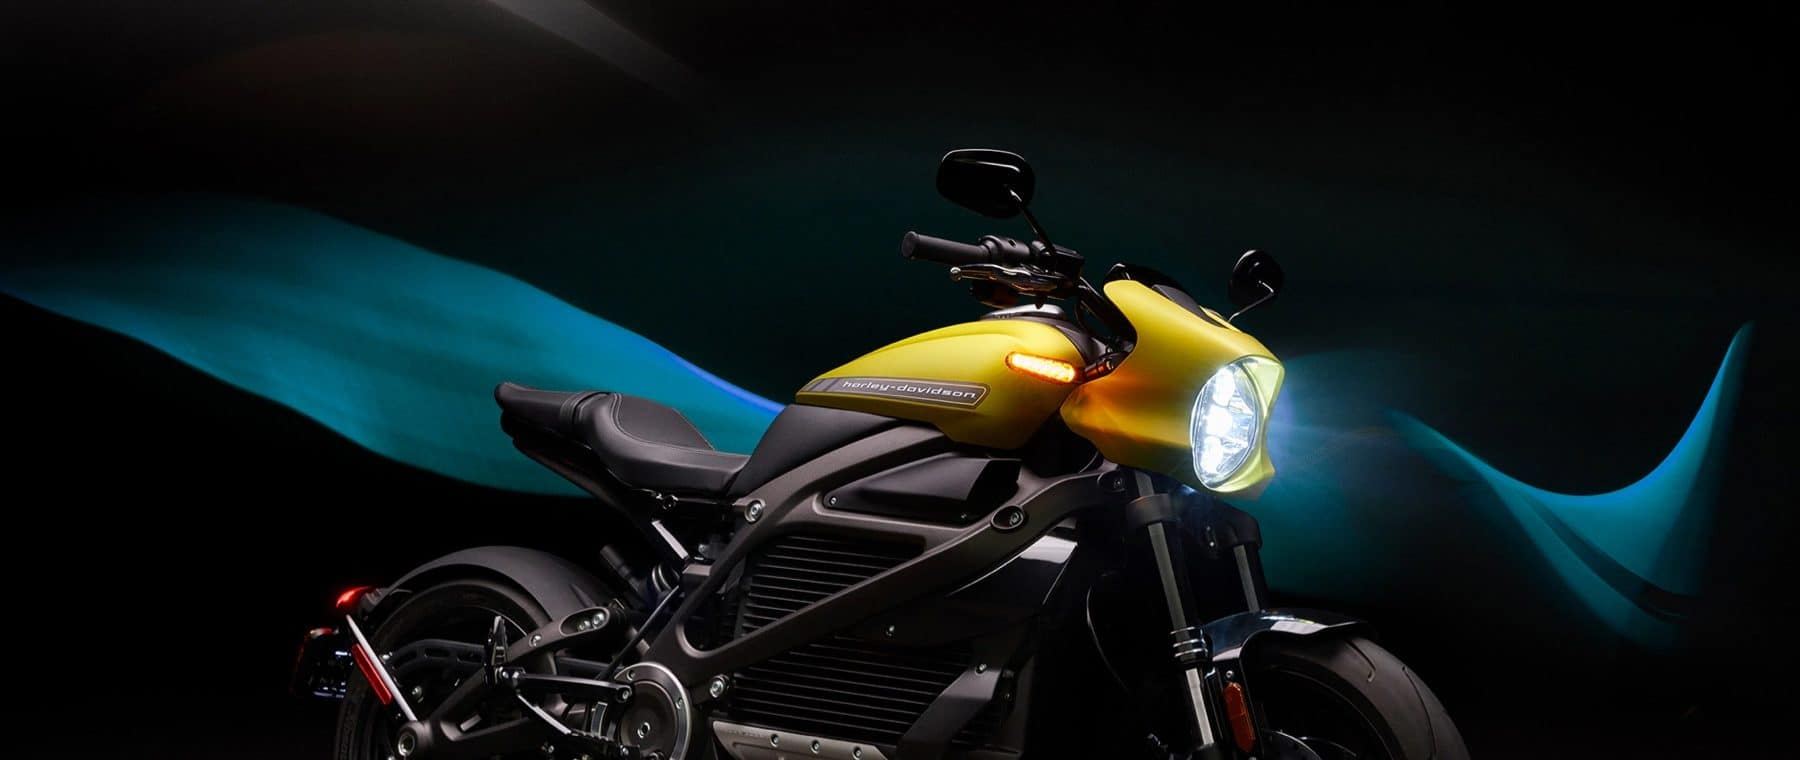 Yellow Livewire Motorcycle